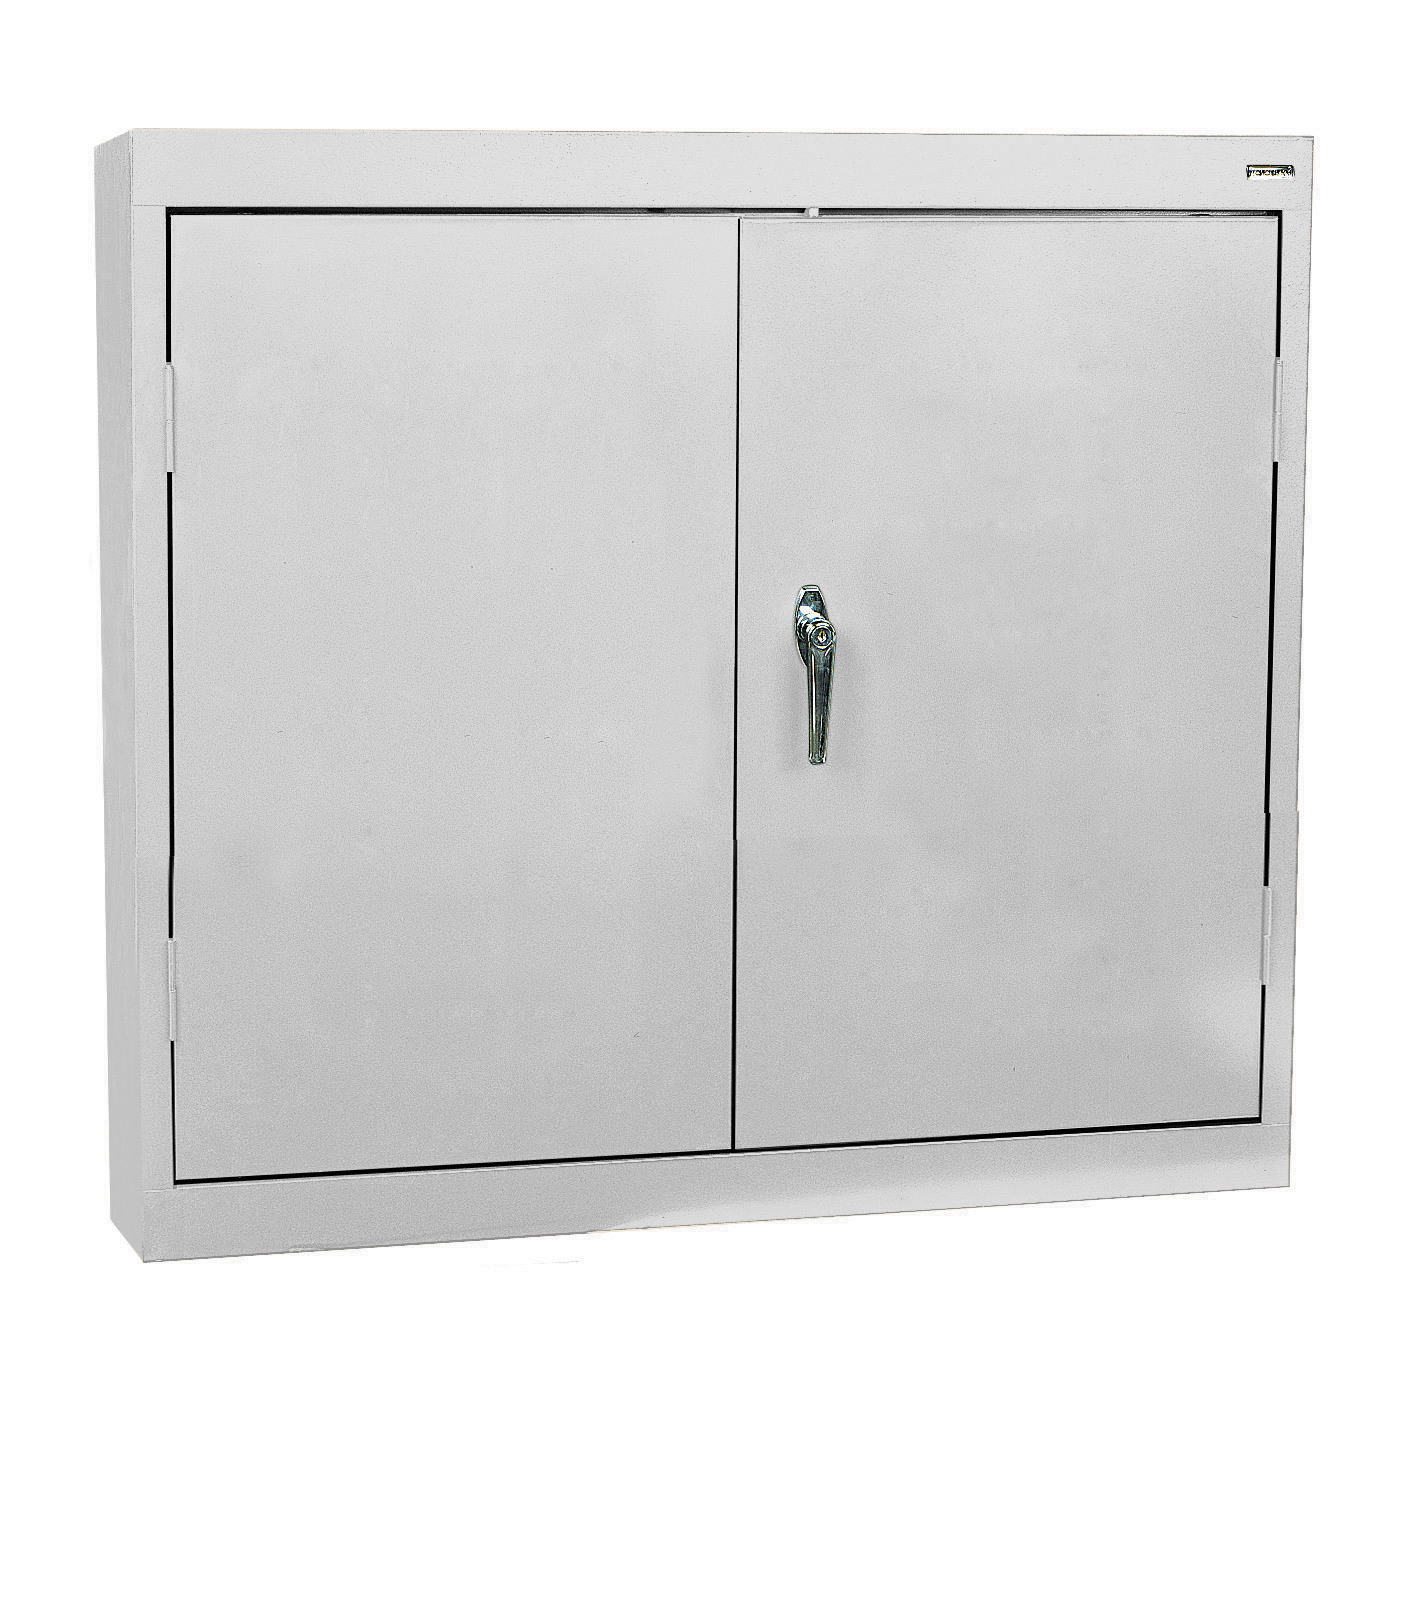 Counter Height Cabinet New Used Storage Cabinets Computer Cabinets Parts Cabinets More